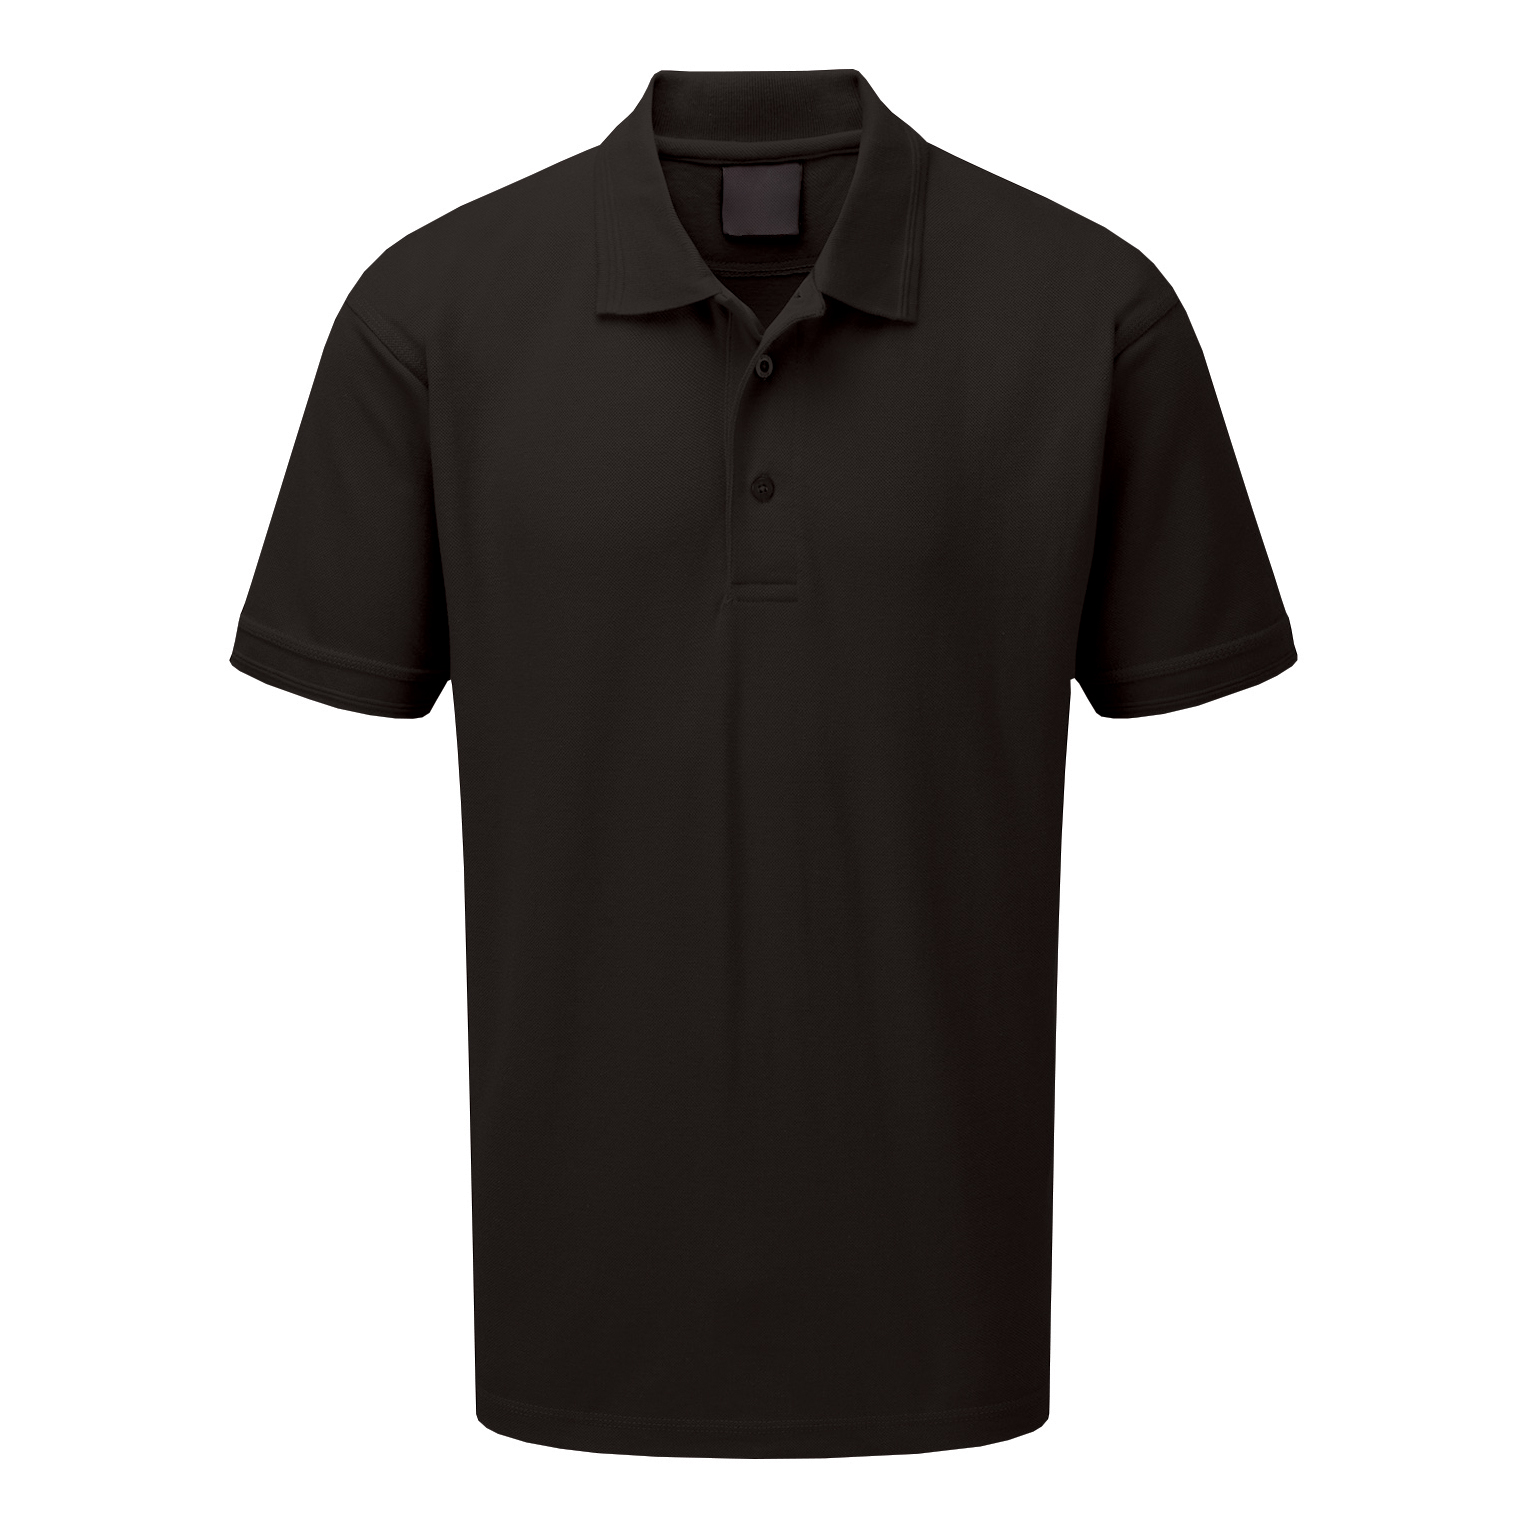 Click Workwear Polo Shirt Polycotton 200gsm Small Black Ref CLPKSBLS 1-3 Days Lead Time